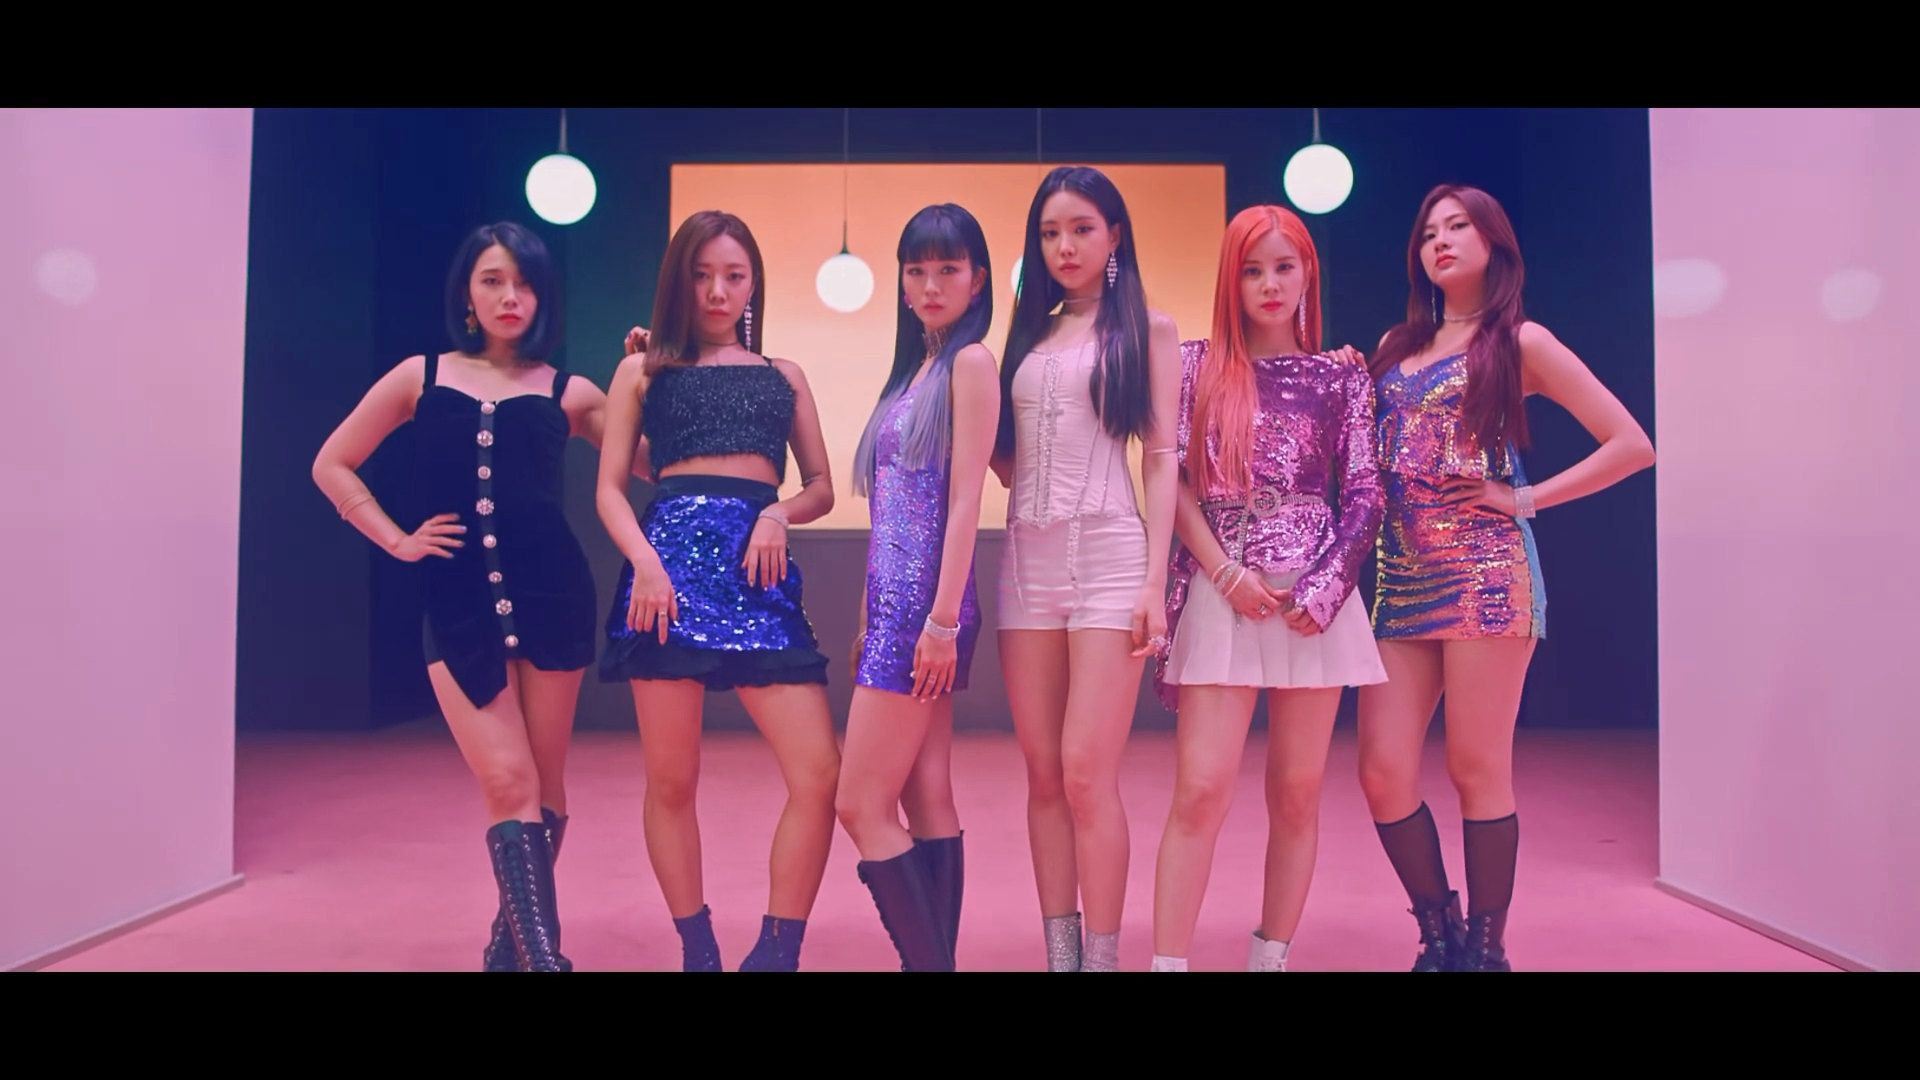 Apink Wallpapers Top Free Apink Backgrounds Wallpaperaccess